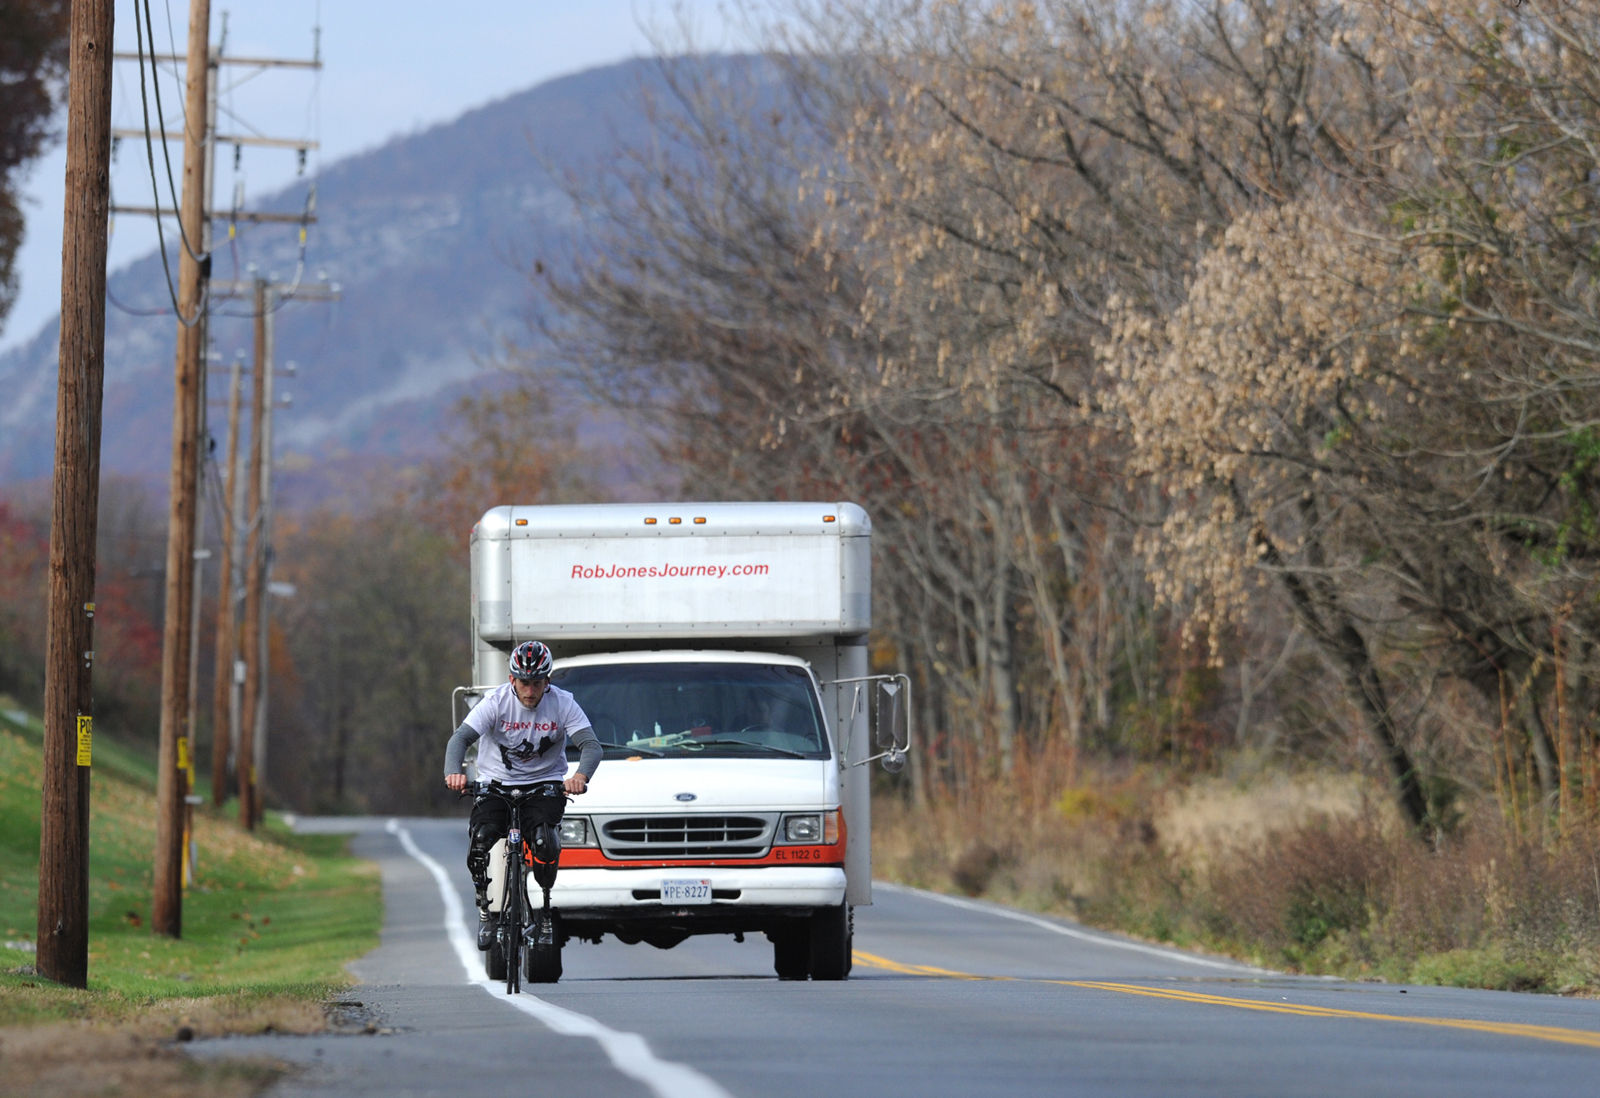 It took Jones six months to cross the U.S. by bike. He started the 5,200-mile journey in Bar Harbor, Maine, in 2013 and ended in San Diego, California, in 2014. (Courtesy Rob Jones Journey)